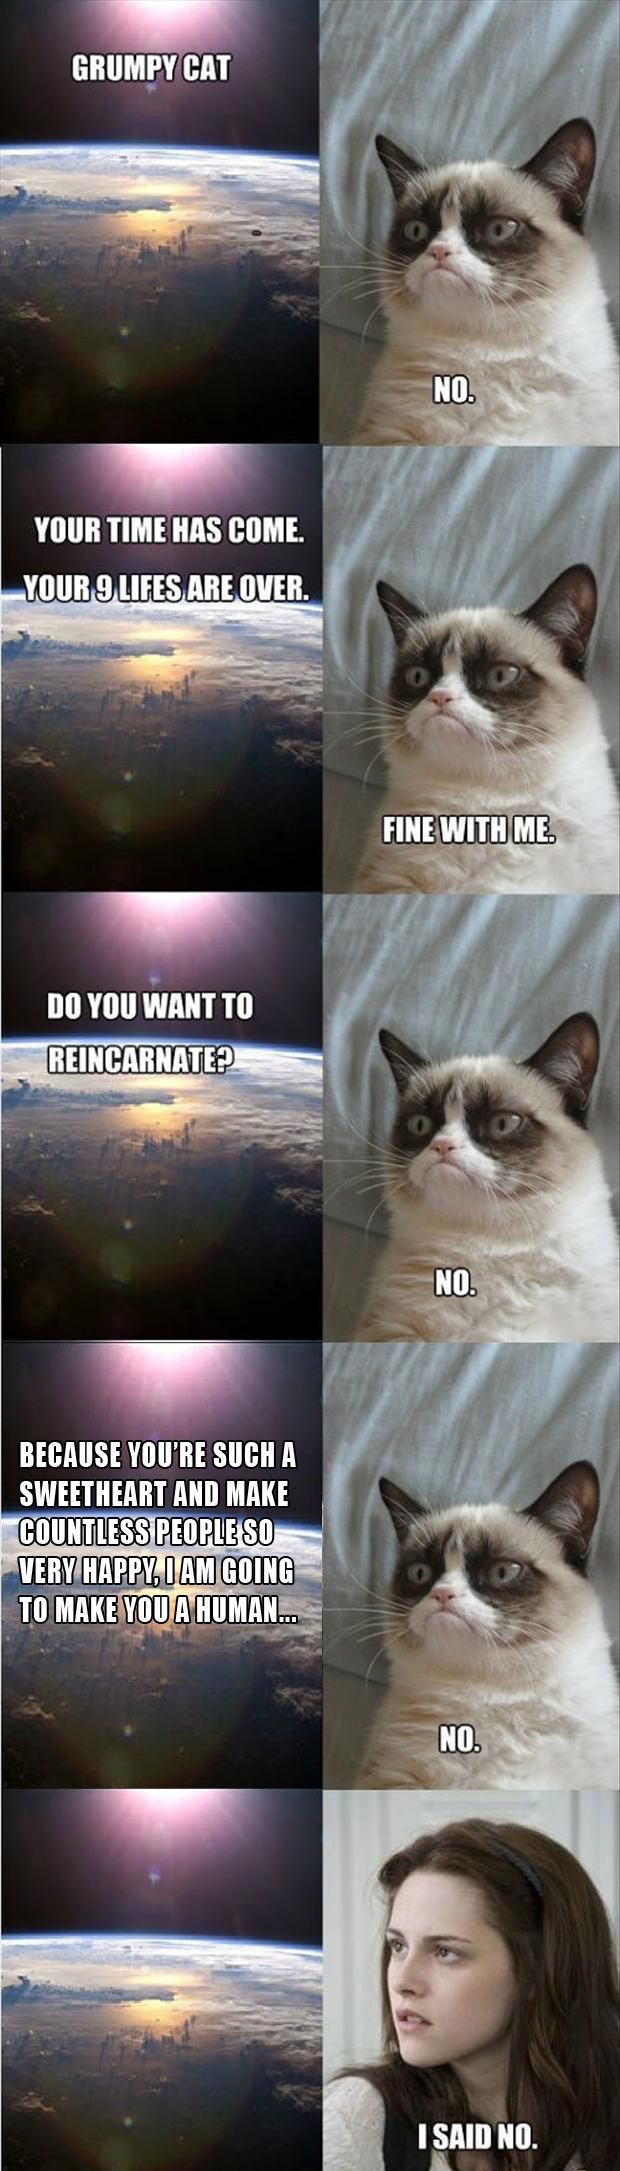 I don't normally post these, but this one os great!!!!! grumpy cat is made into kristen Stewart.